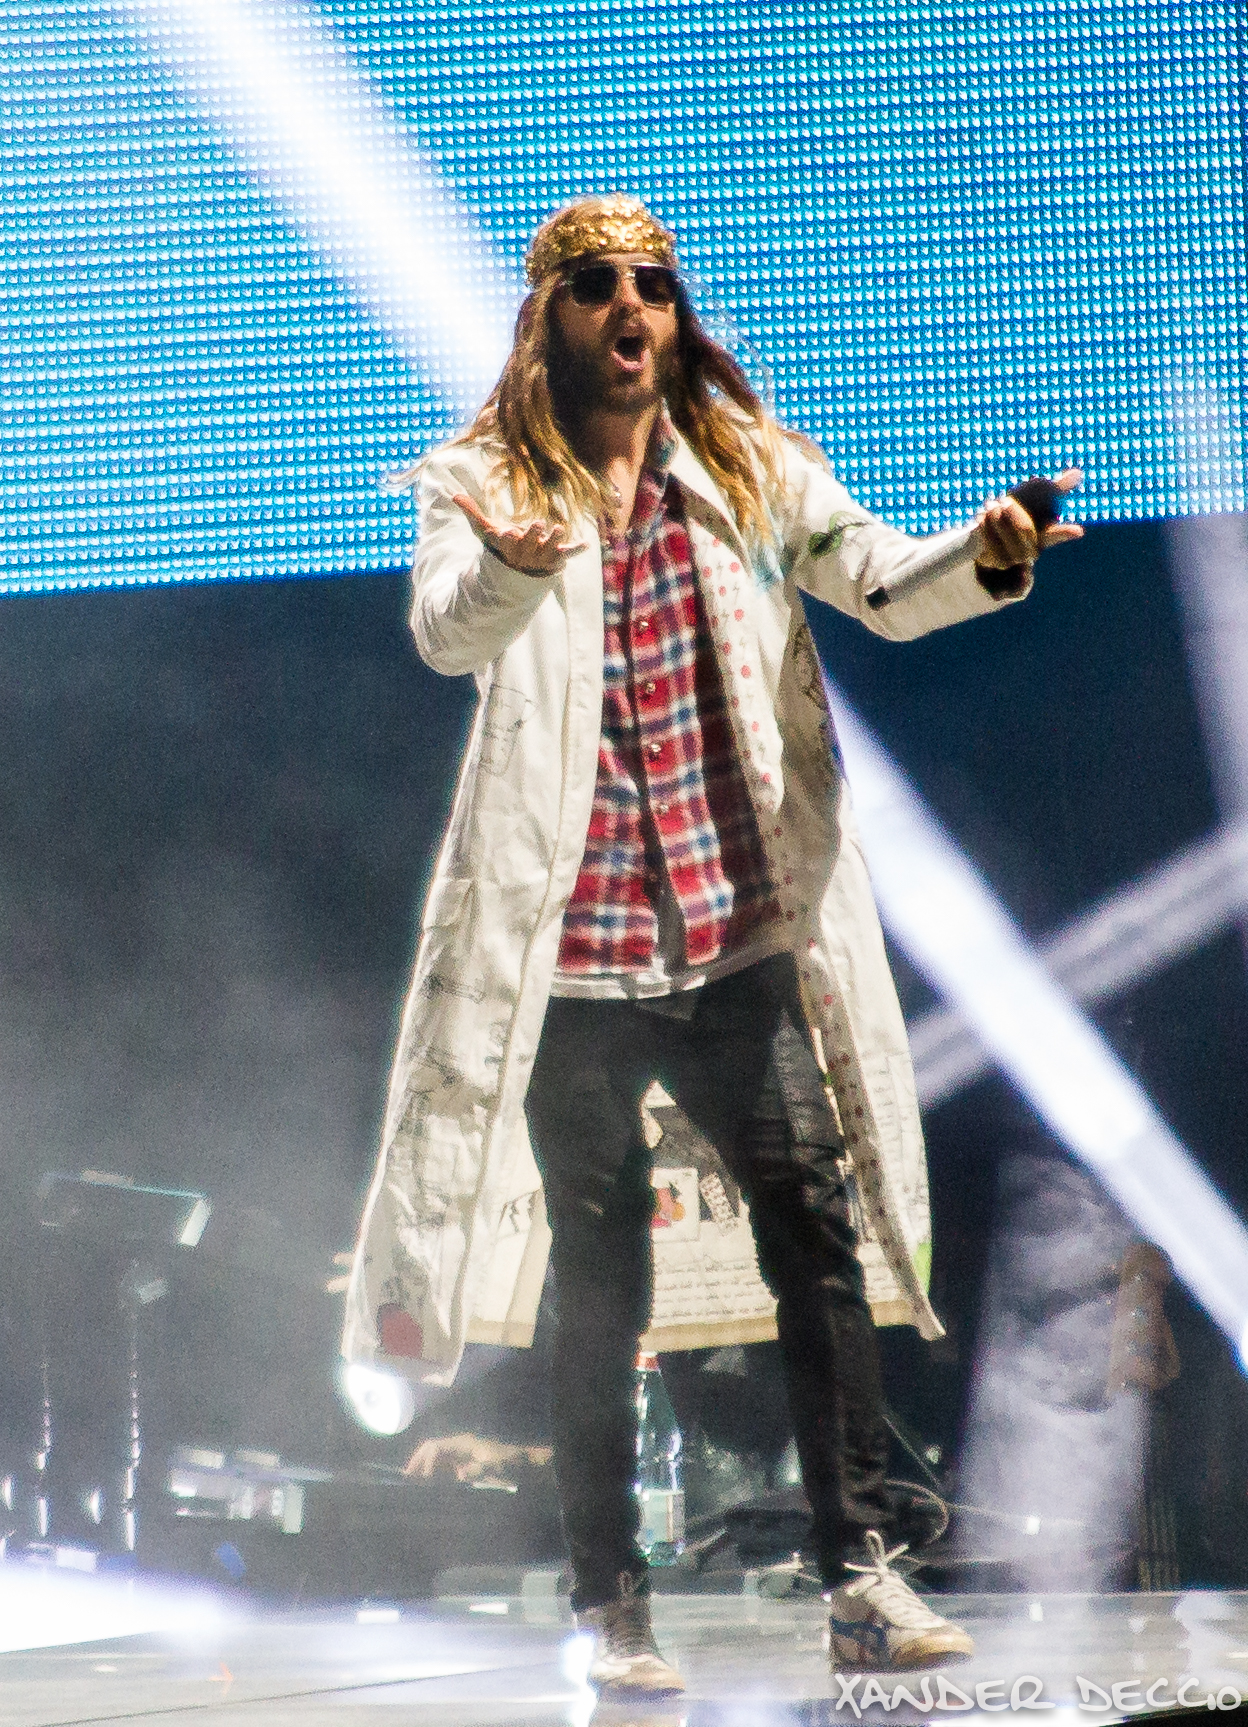 30 Seconds To Mars @ The Gorge Amphitheater (Photo By Xander Deccio)